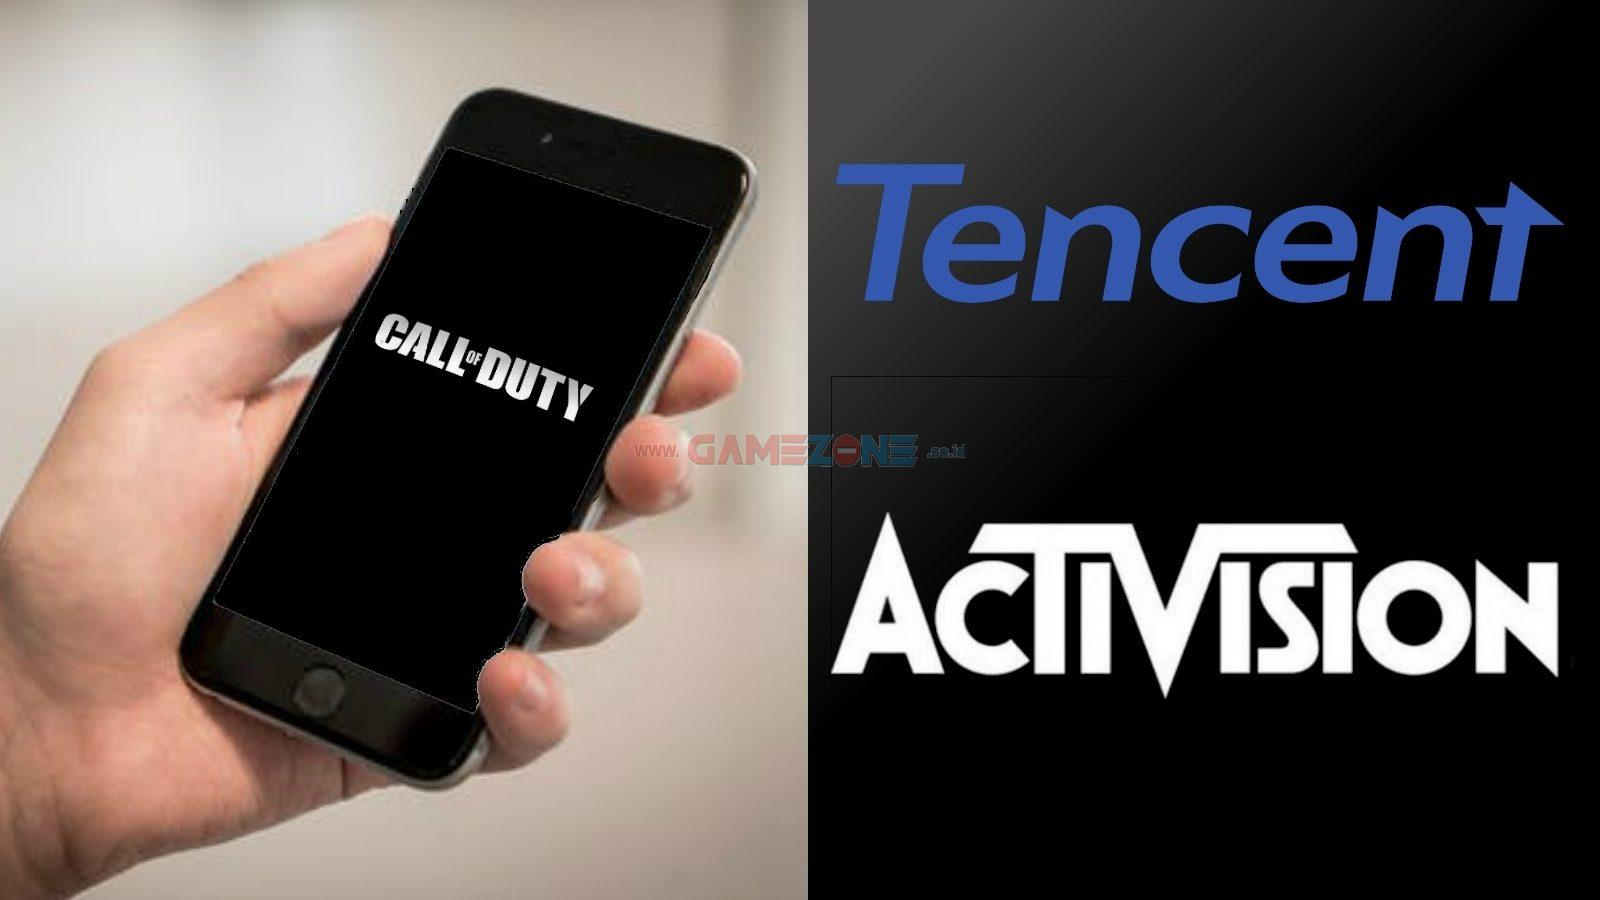 Beginilah Tampilan Call Of Duty Mobile Buatan Tencent Game Zone Indomog Voucher Lyto 65000 On